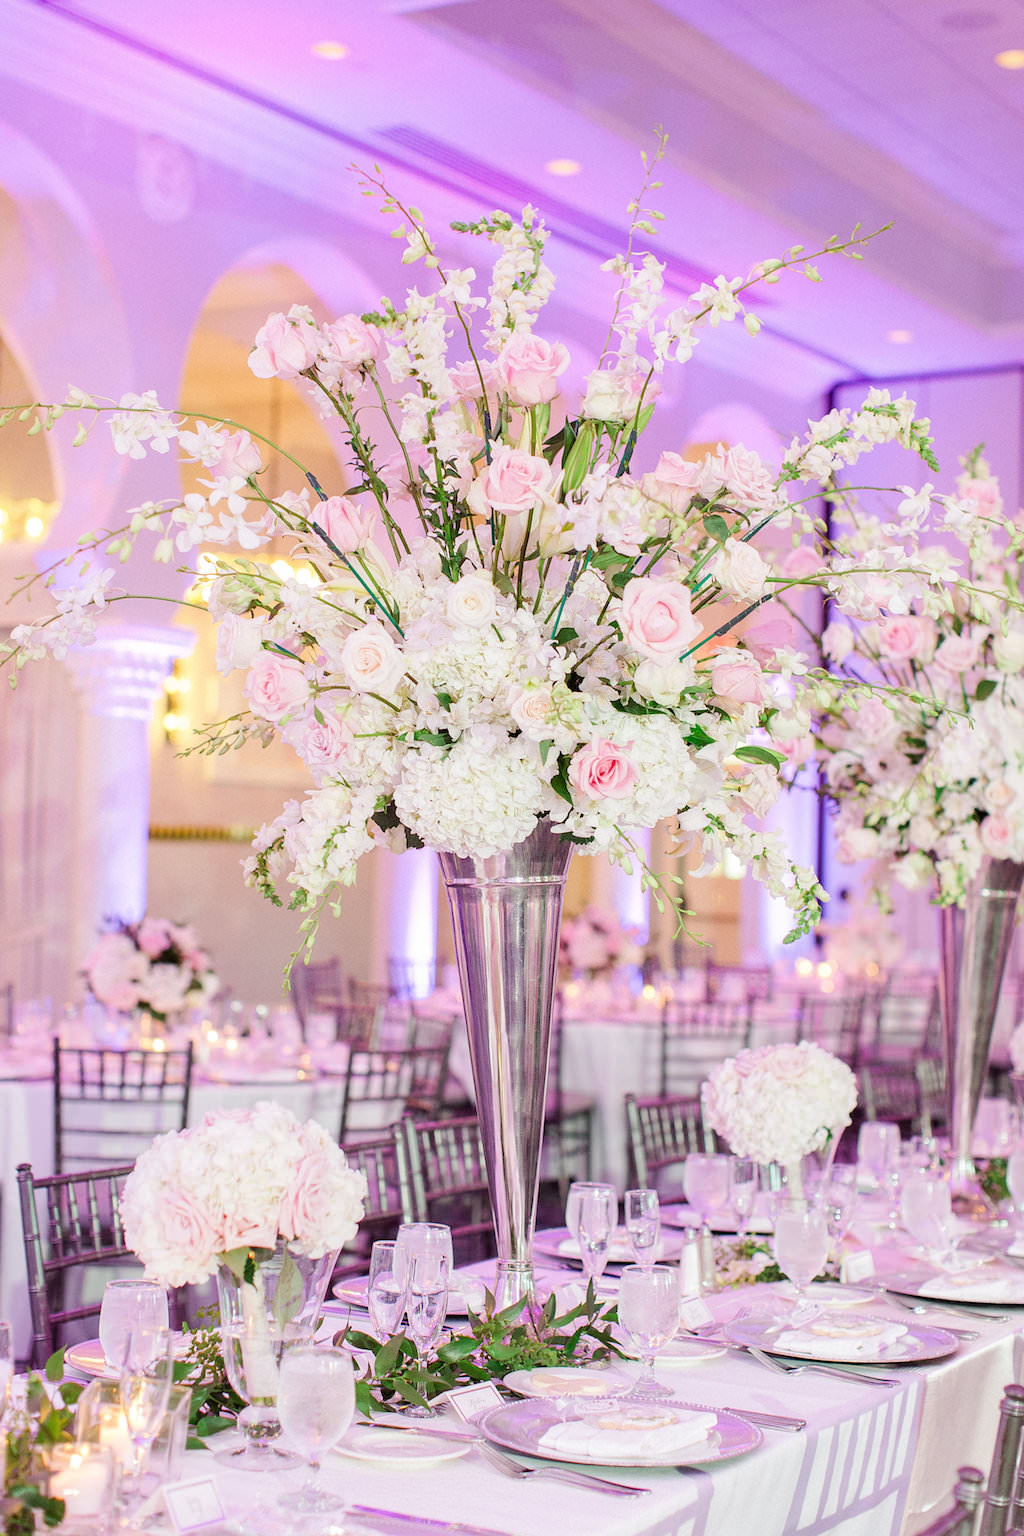 Elegant Ballroom Reception Decor, Long Banquet Table, White Linen, High and Low White and Blush Pink Floral Centerpieces in Silver Vase, Purple/Pink Uplighting, Silver Chiavari Chairs   Tampa Wedding Photographer Ailyn La Torre   Venue The Vinoy Renaissance St. Petersburg Resort & Golf Club